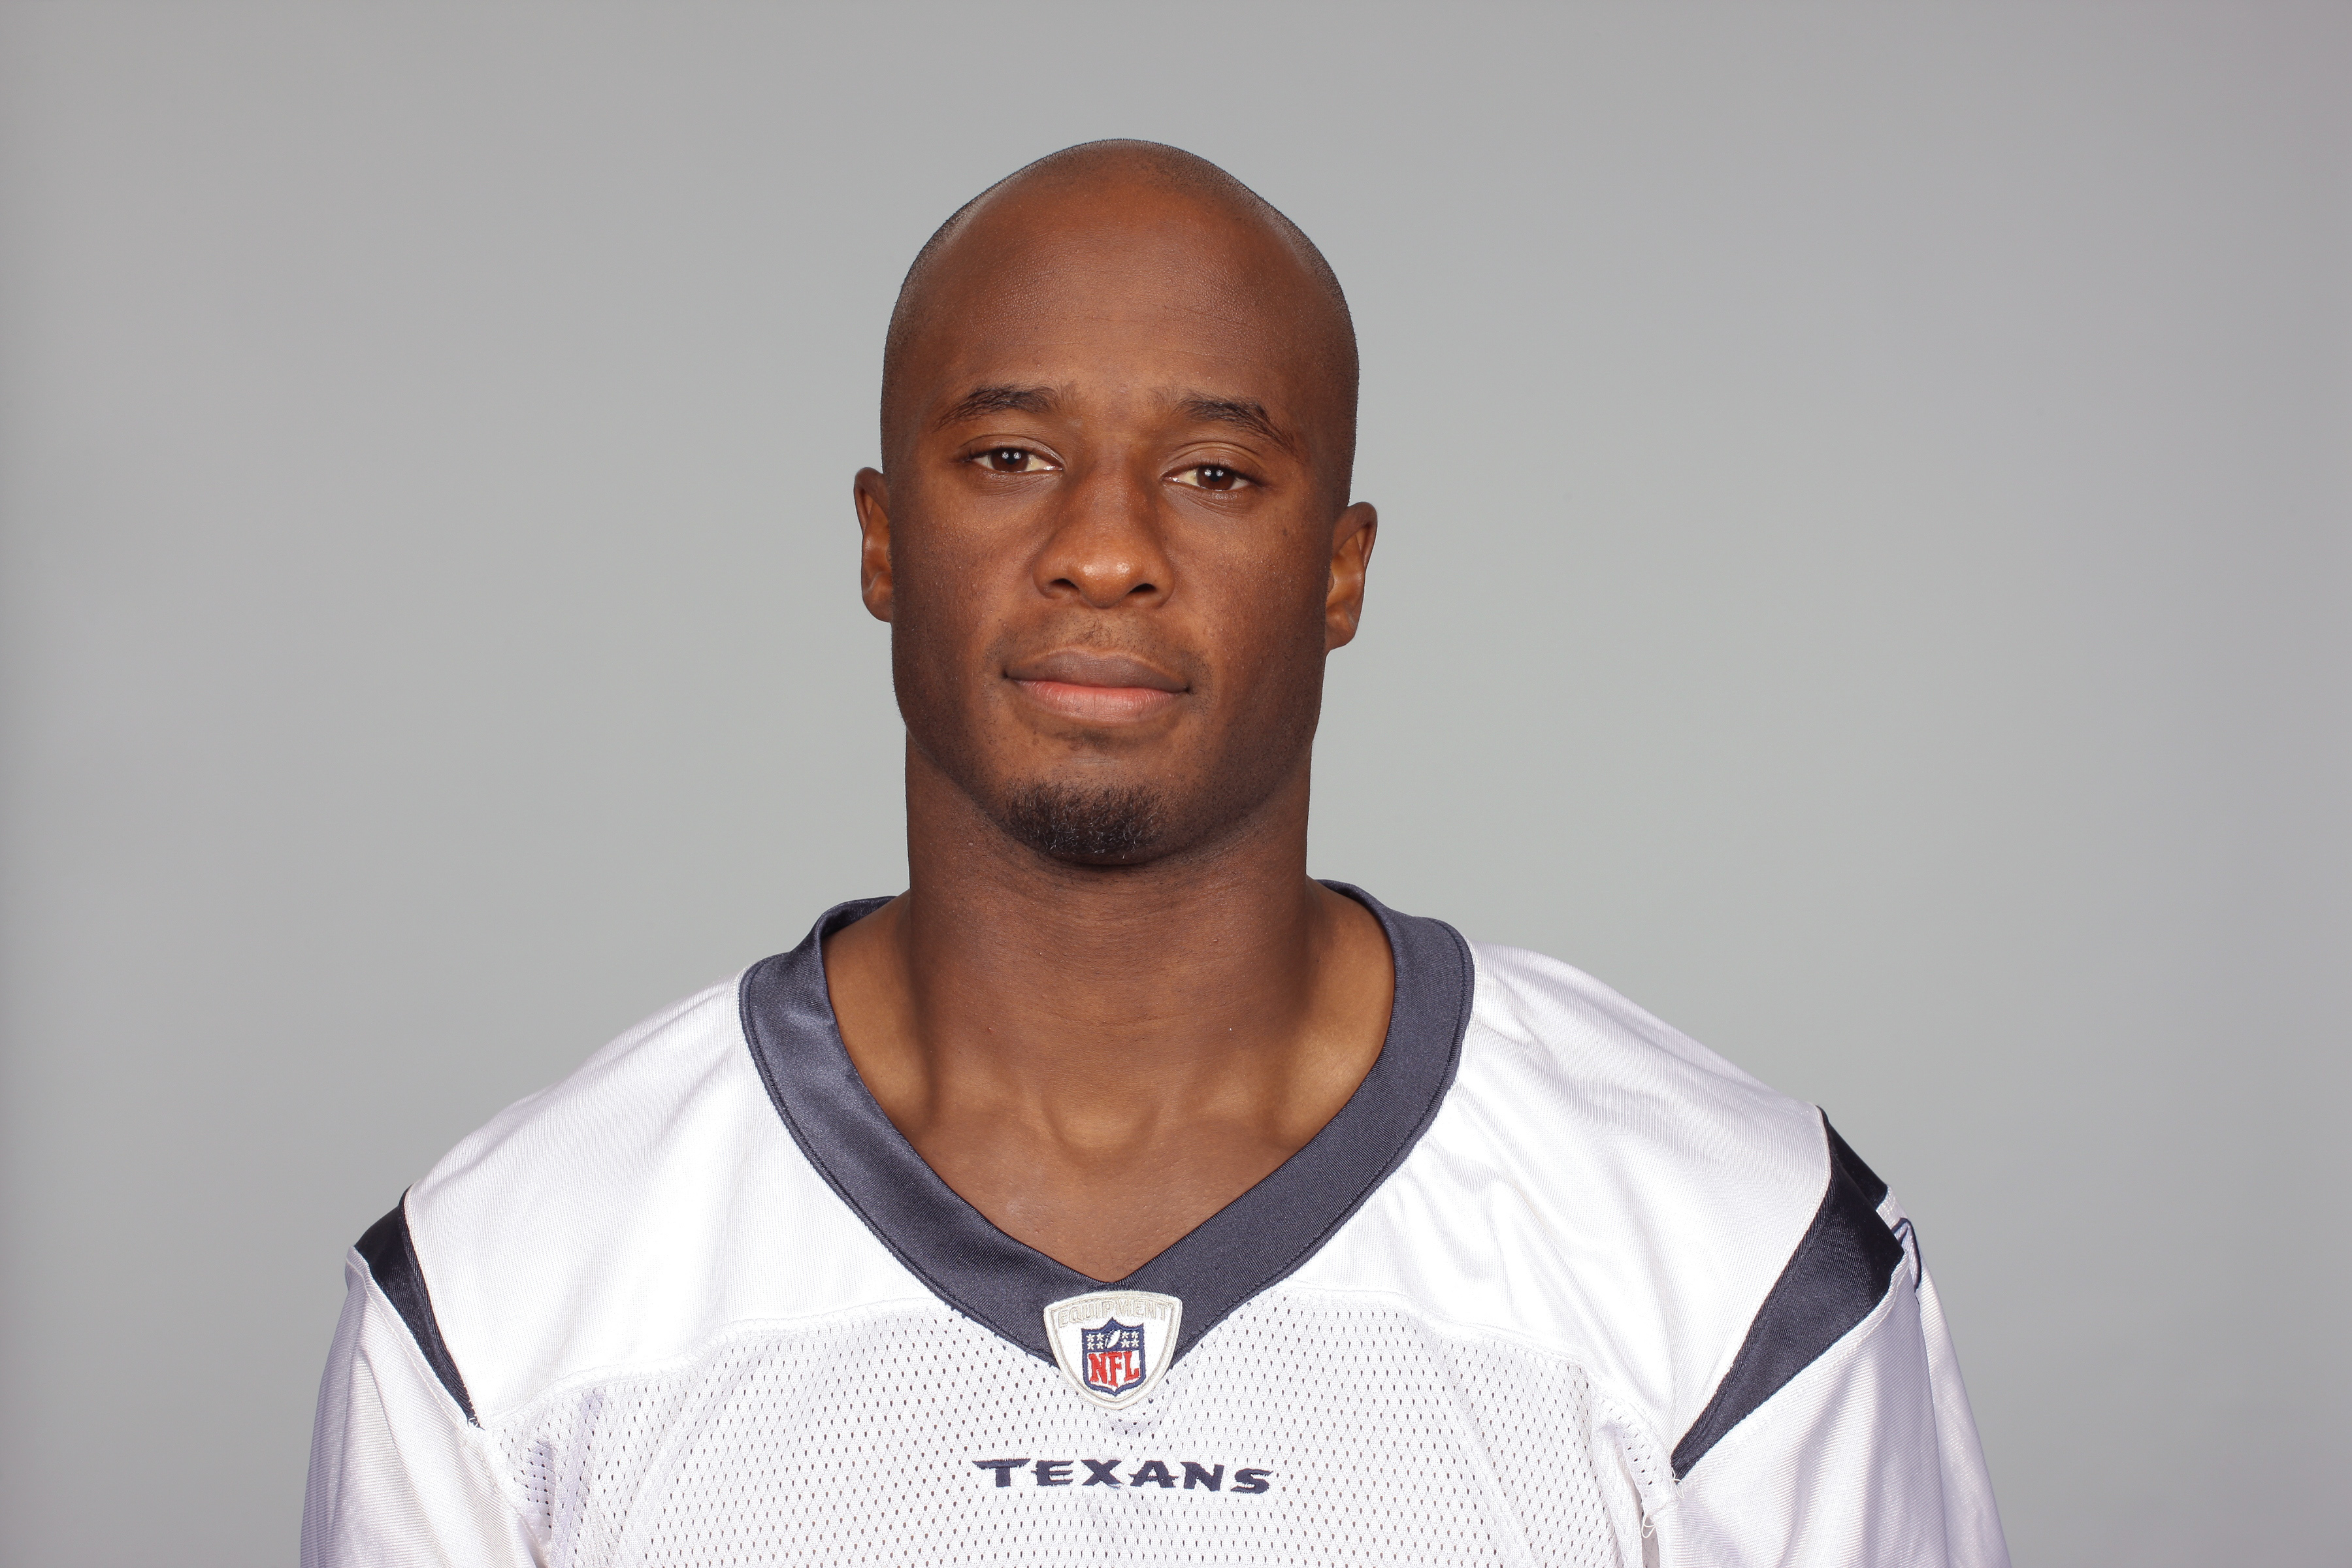 Houston Texans 2011 Headshots